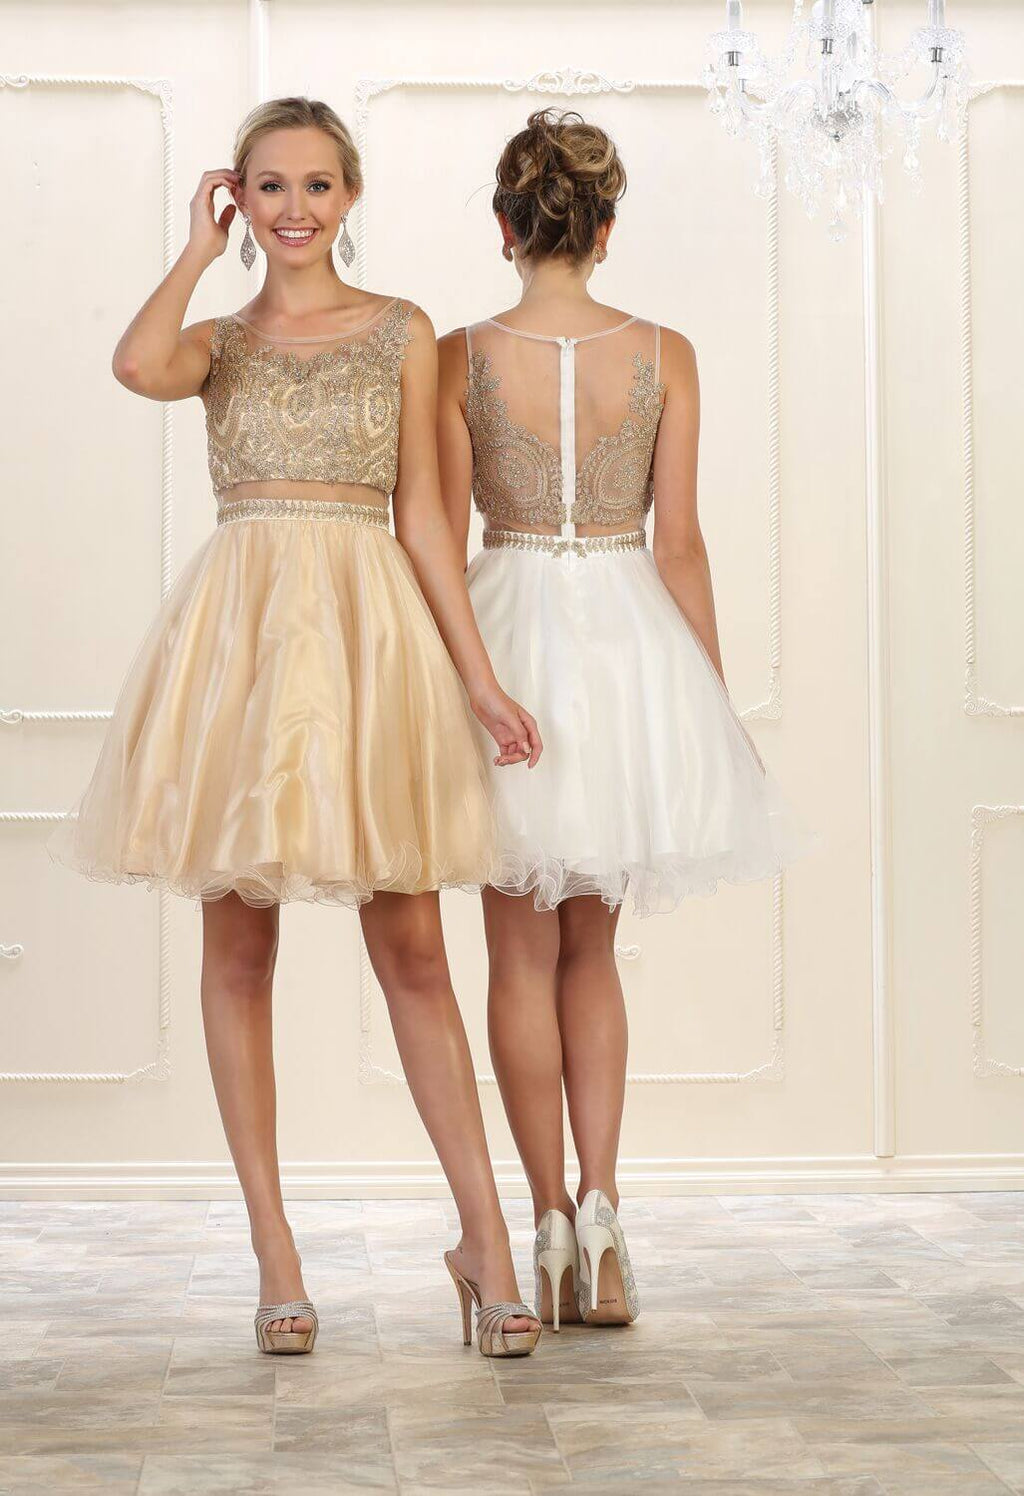 Short Prom Dress Homecoming - The Dress Outlet Champagne/Gold May Queen